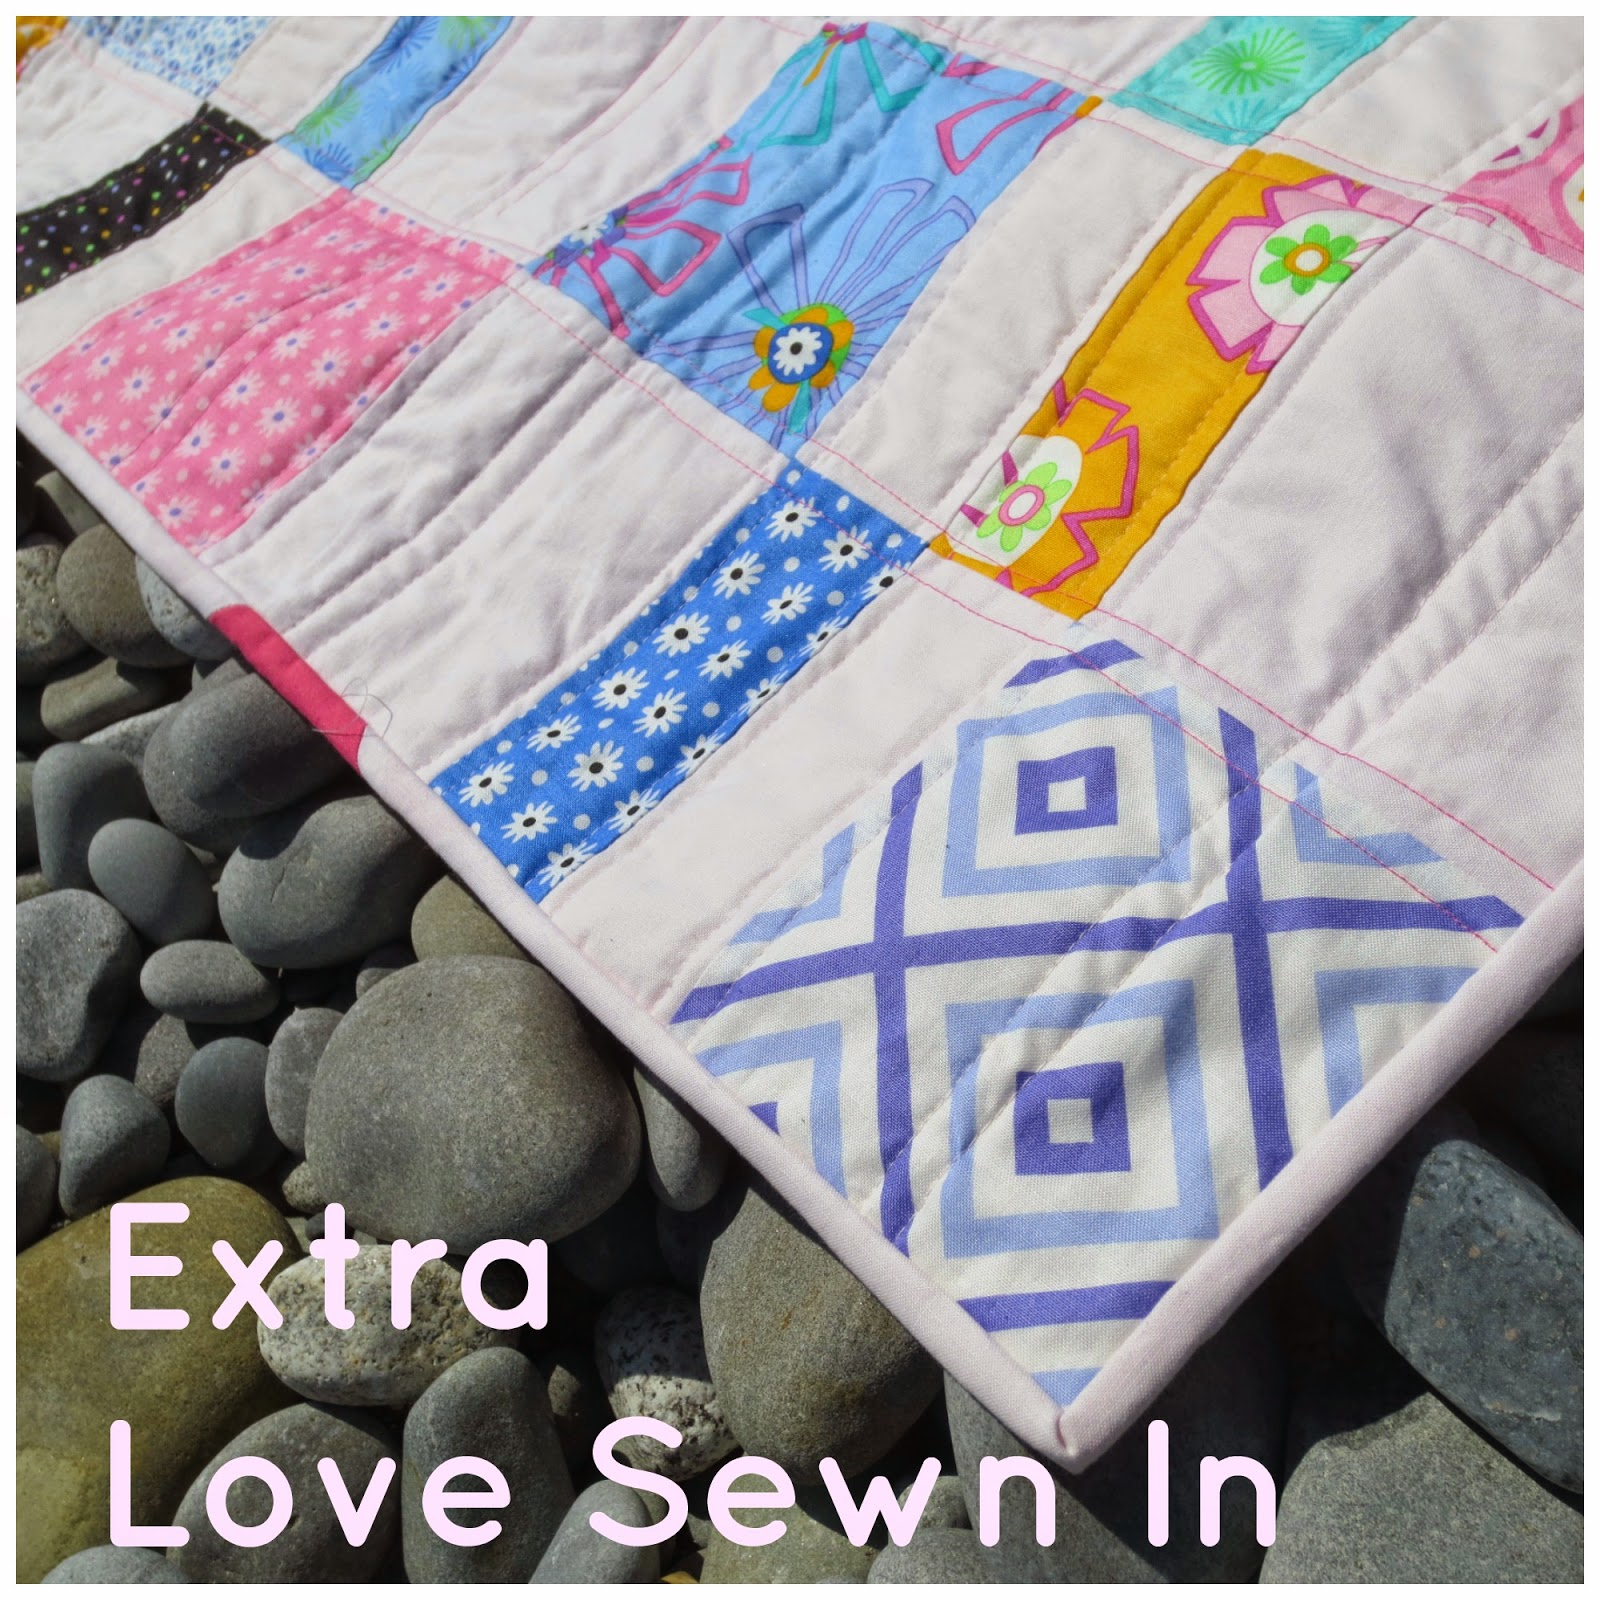 http://quarterinchfromtheedge.blogspot.ca/2015/04/friday-finish-extra-love-sewn-in.html